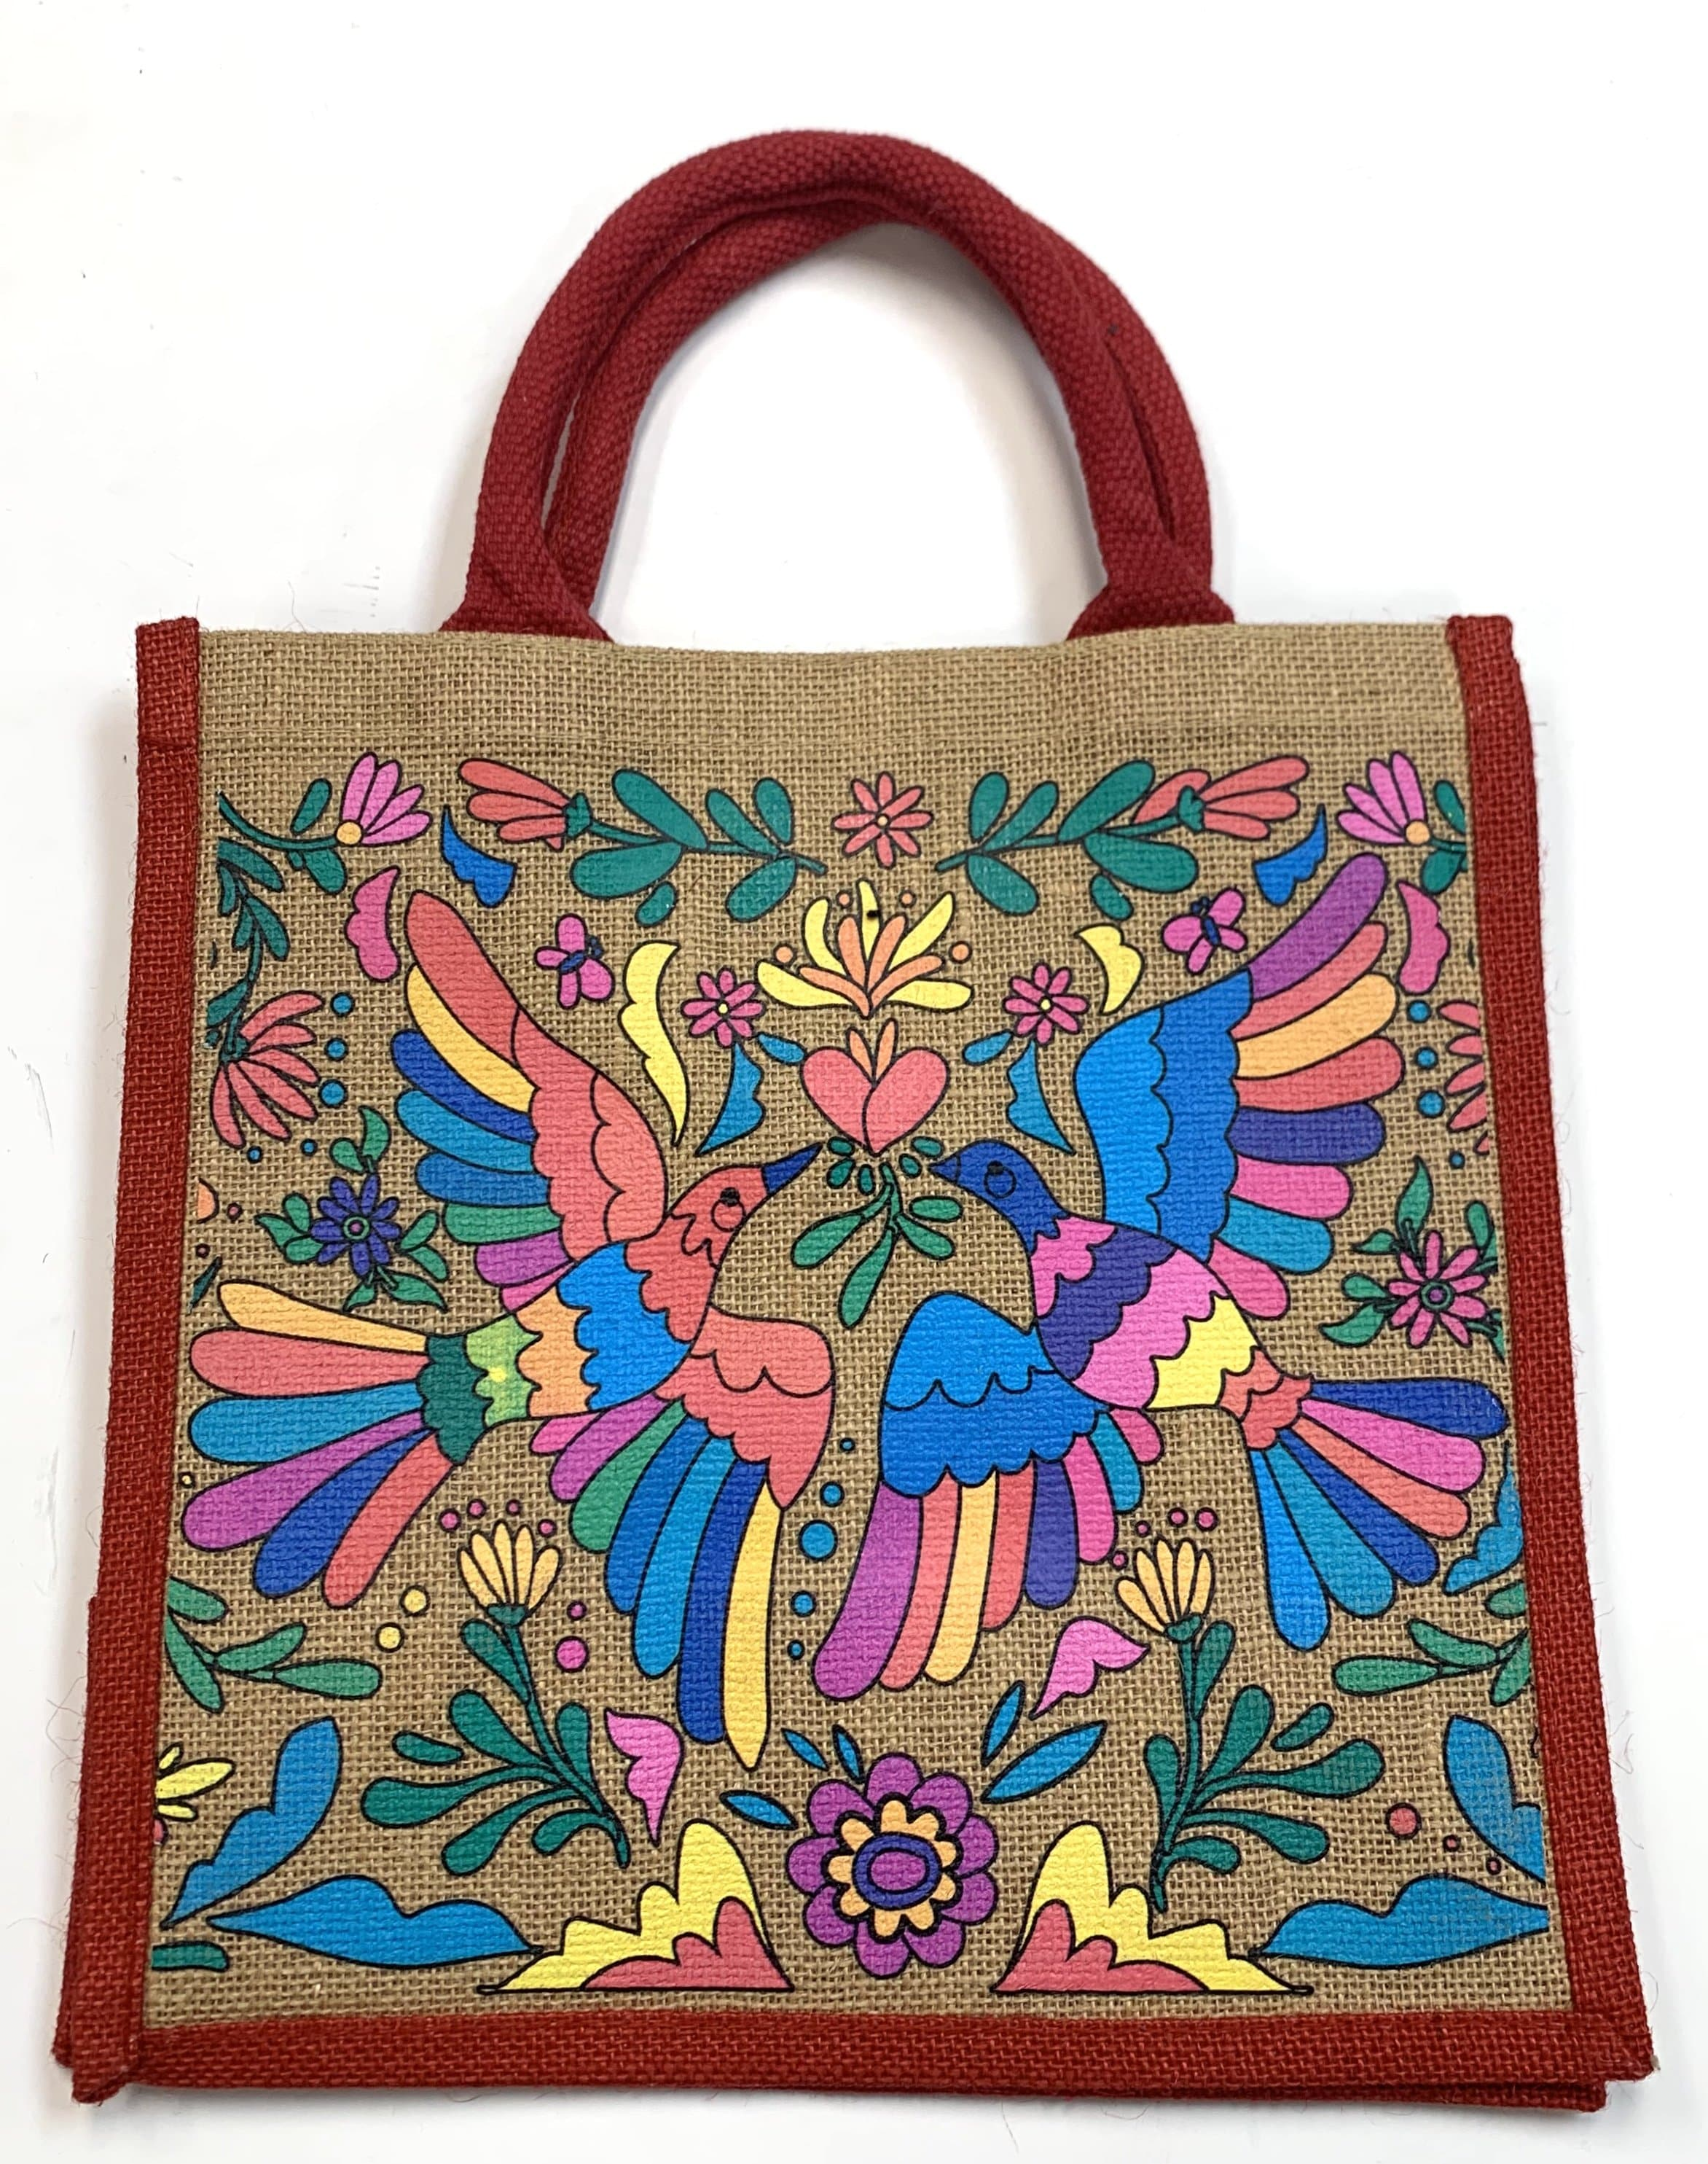 Burlap Mercado Tote Bag